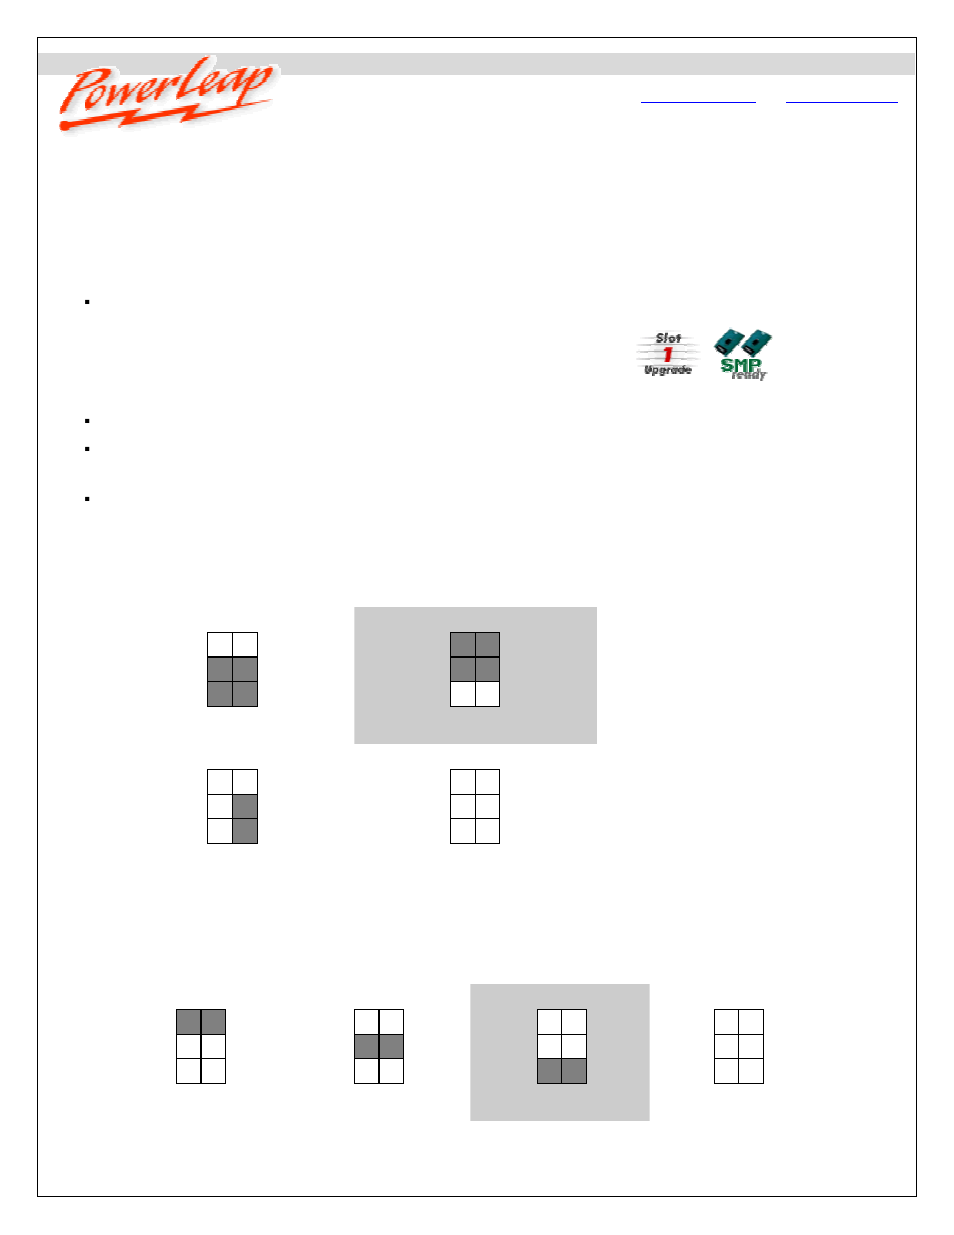 Compaq PowerLeap PL-P3/SMP User Manual   6 pages   Also for